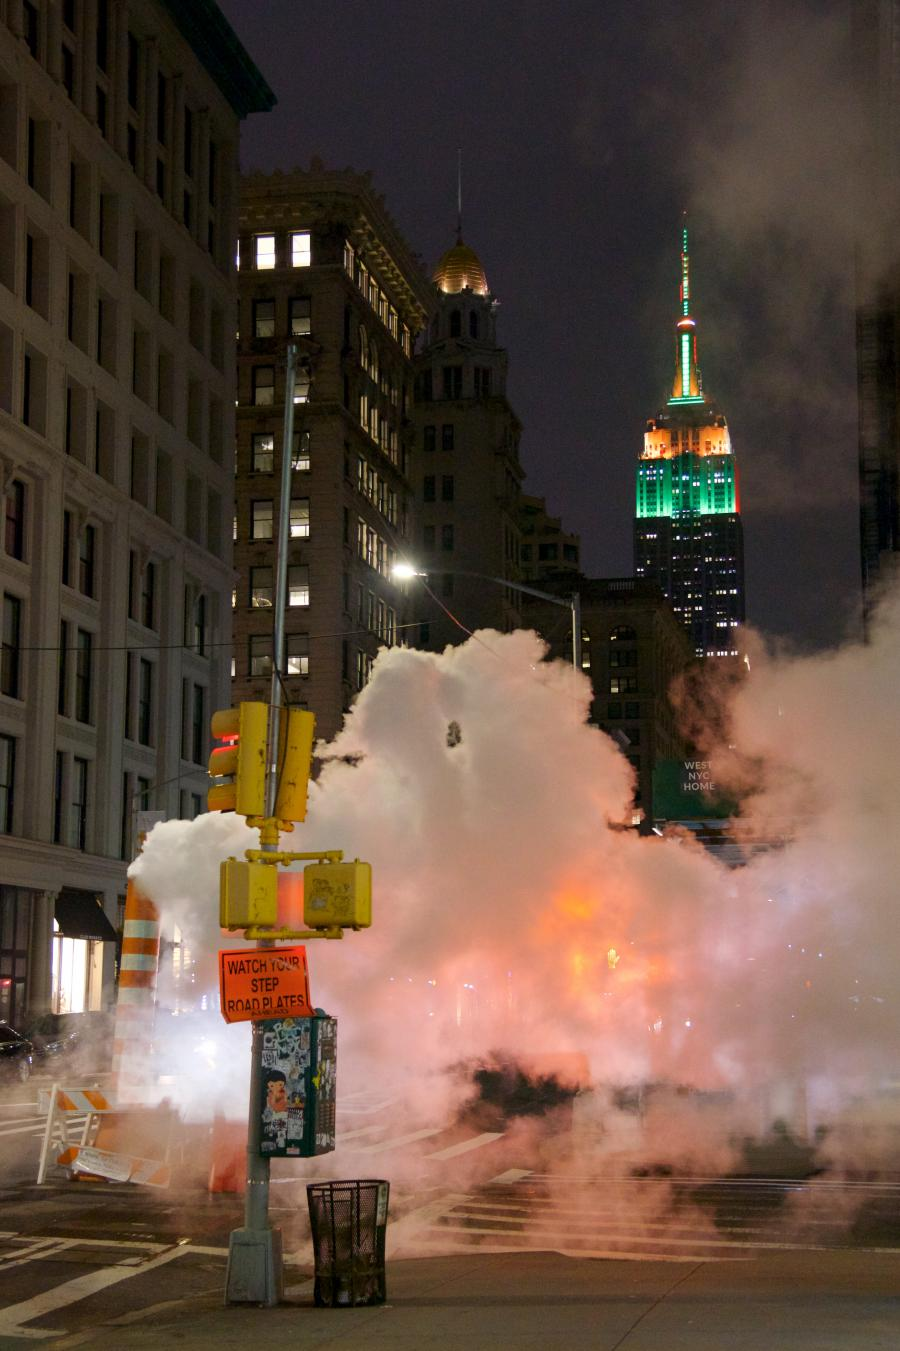 street in New York City at night with steam and construction signage